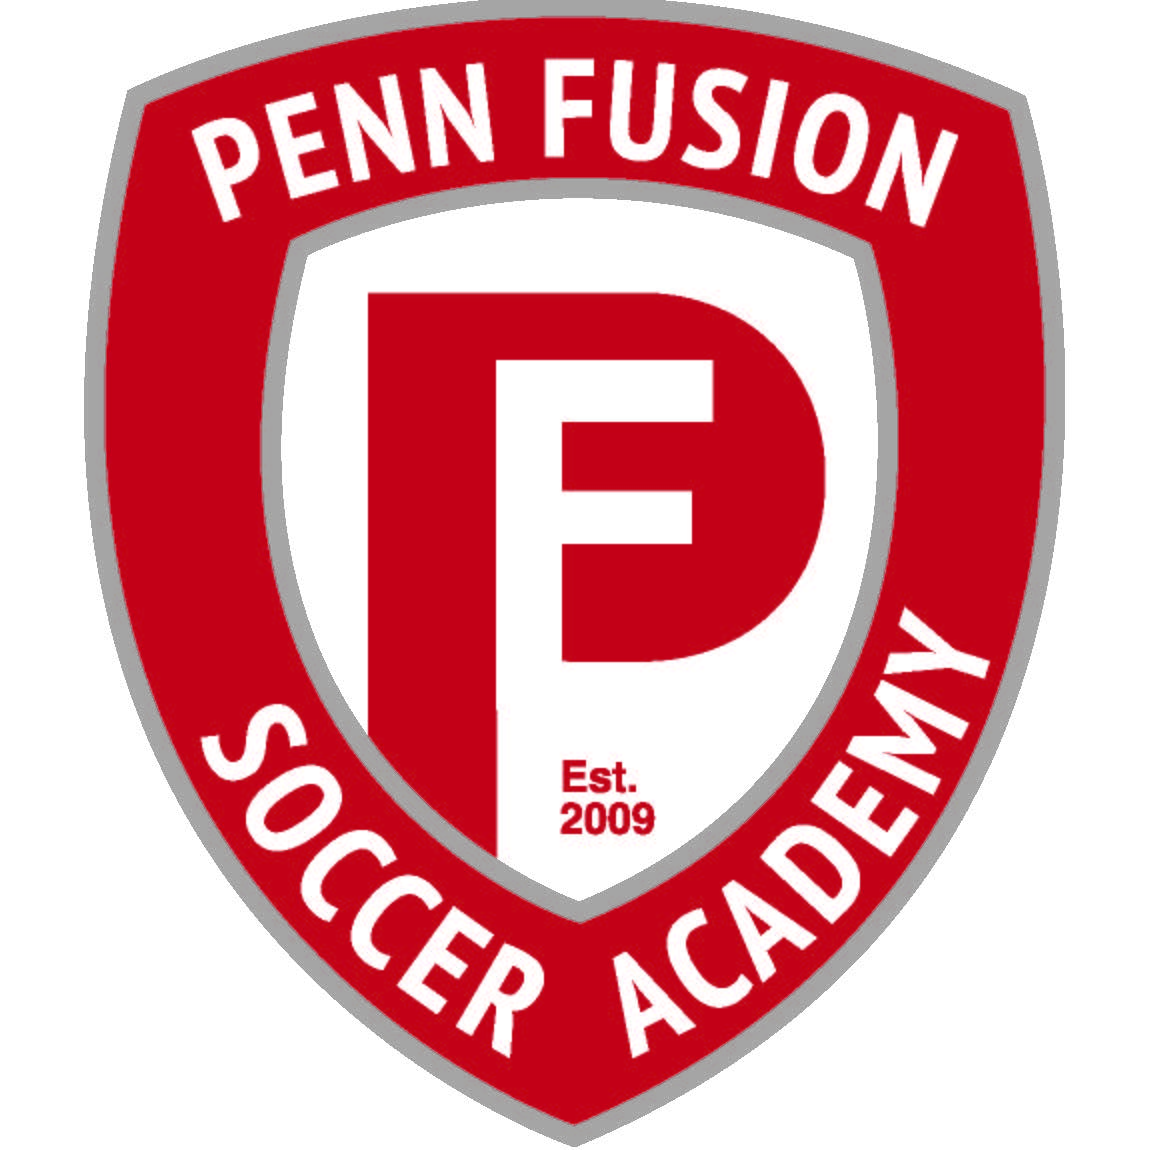 Penn Fusion Parent Resources